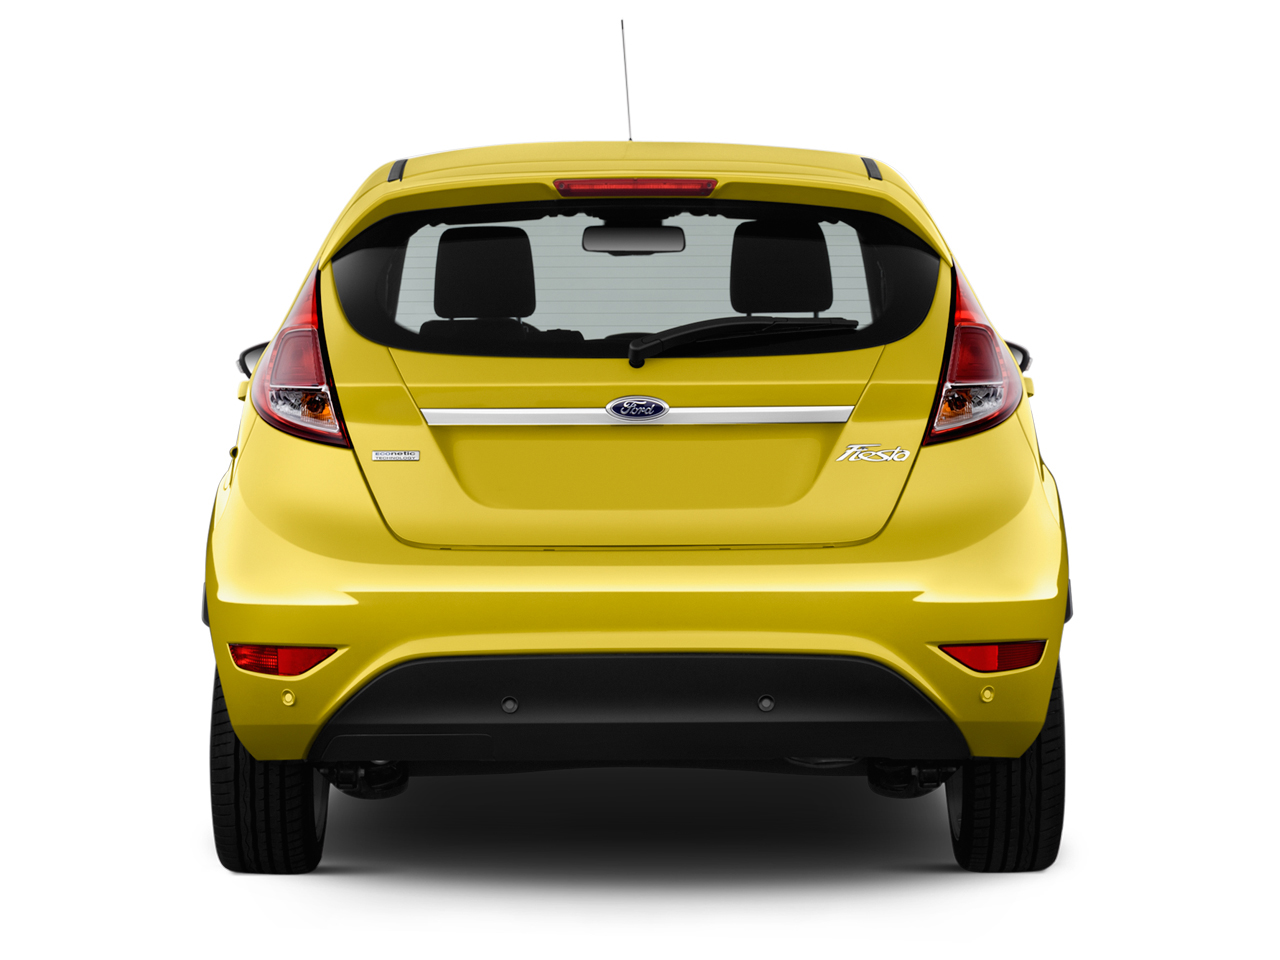 ford fiesta 2018 1 6l trend in uae new car prices specs reviews photos yallamotor. Black Bedroom Furniture Sets. Home Design Ideas